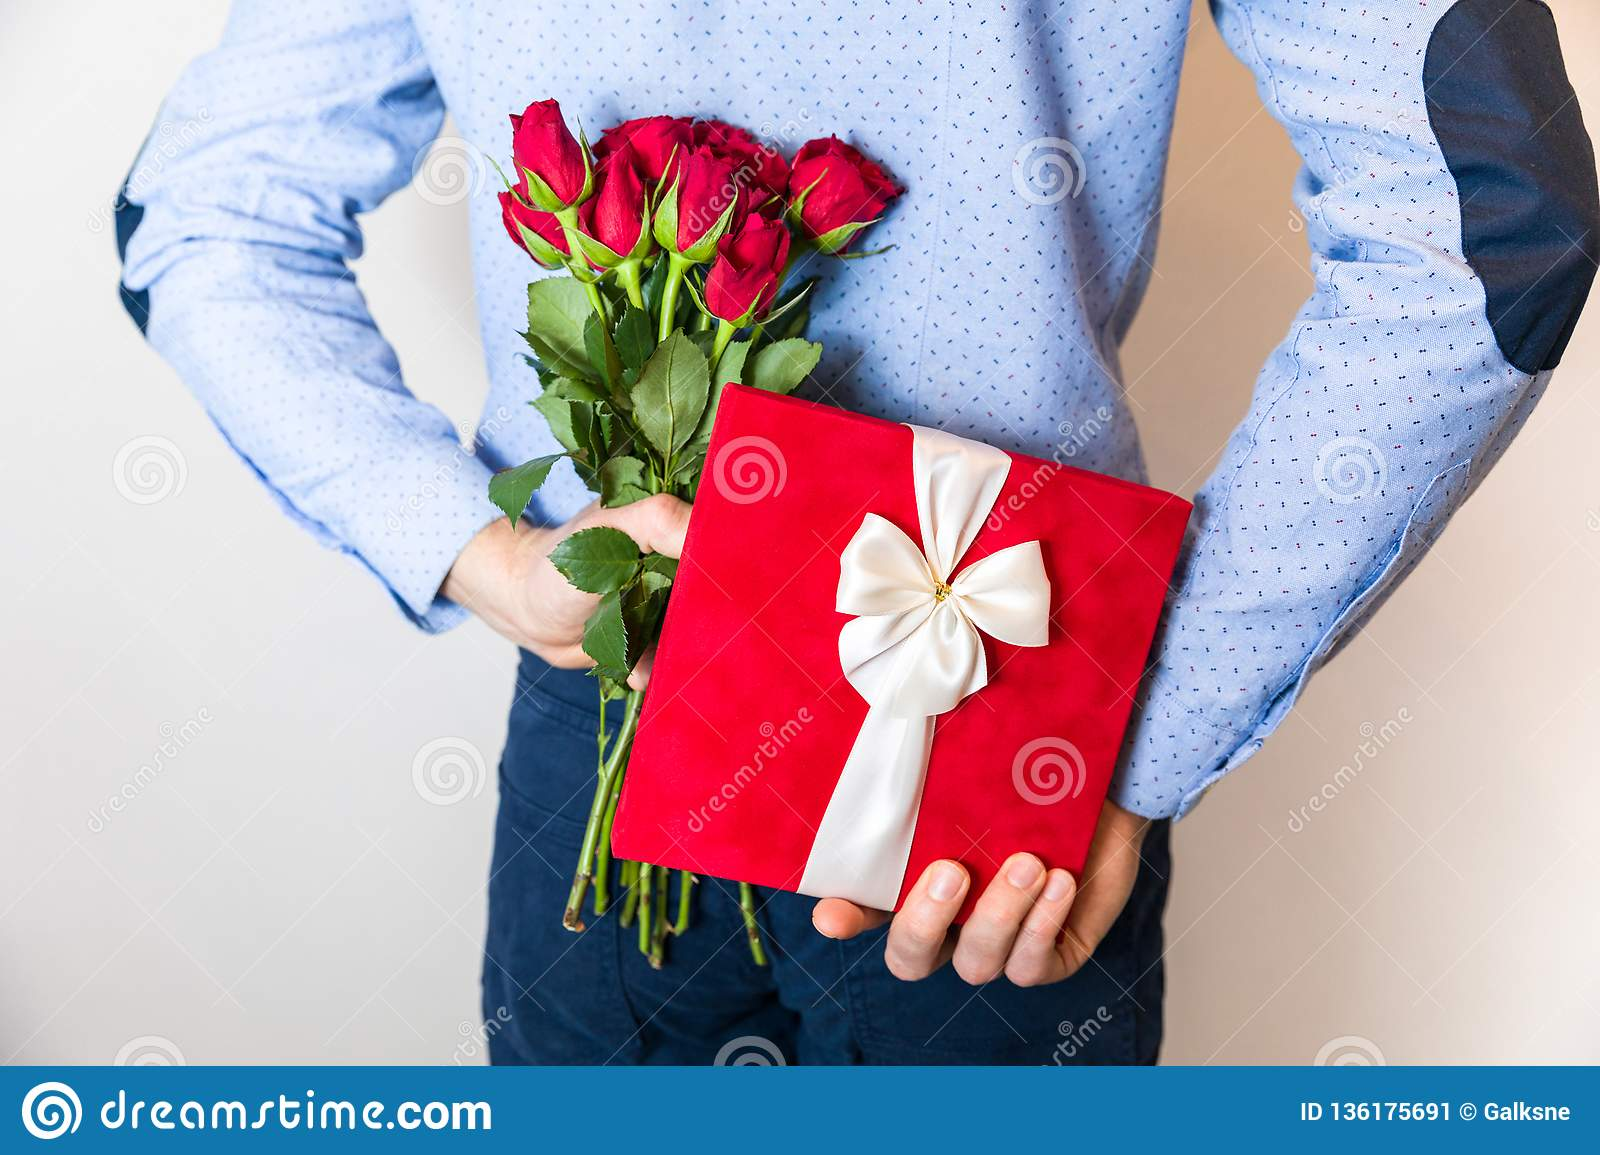 Cute first date gifts for him